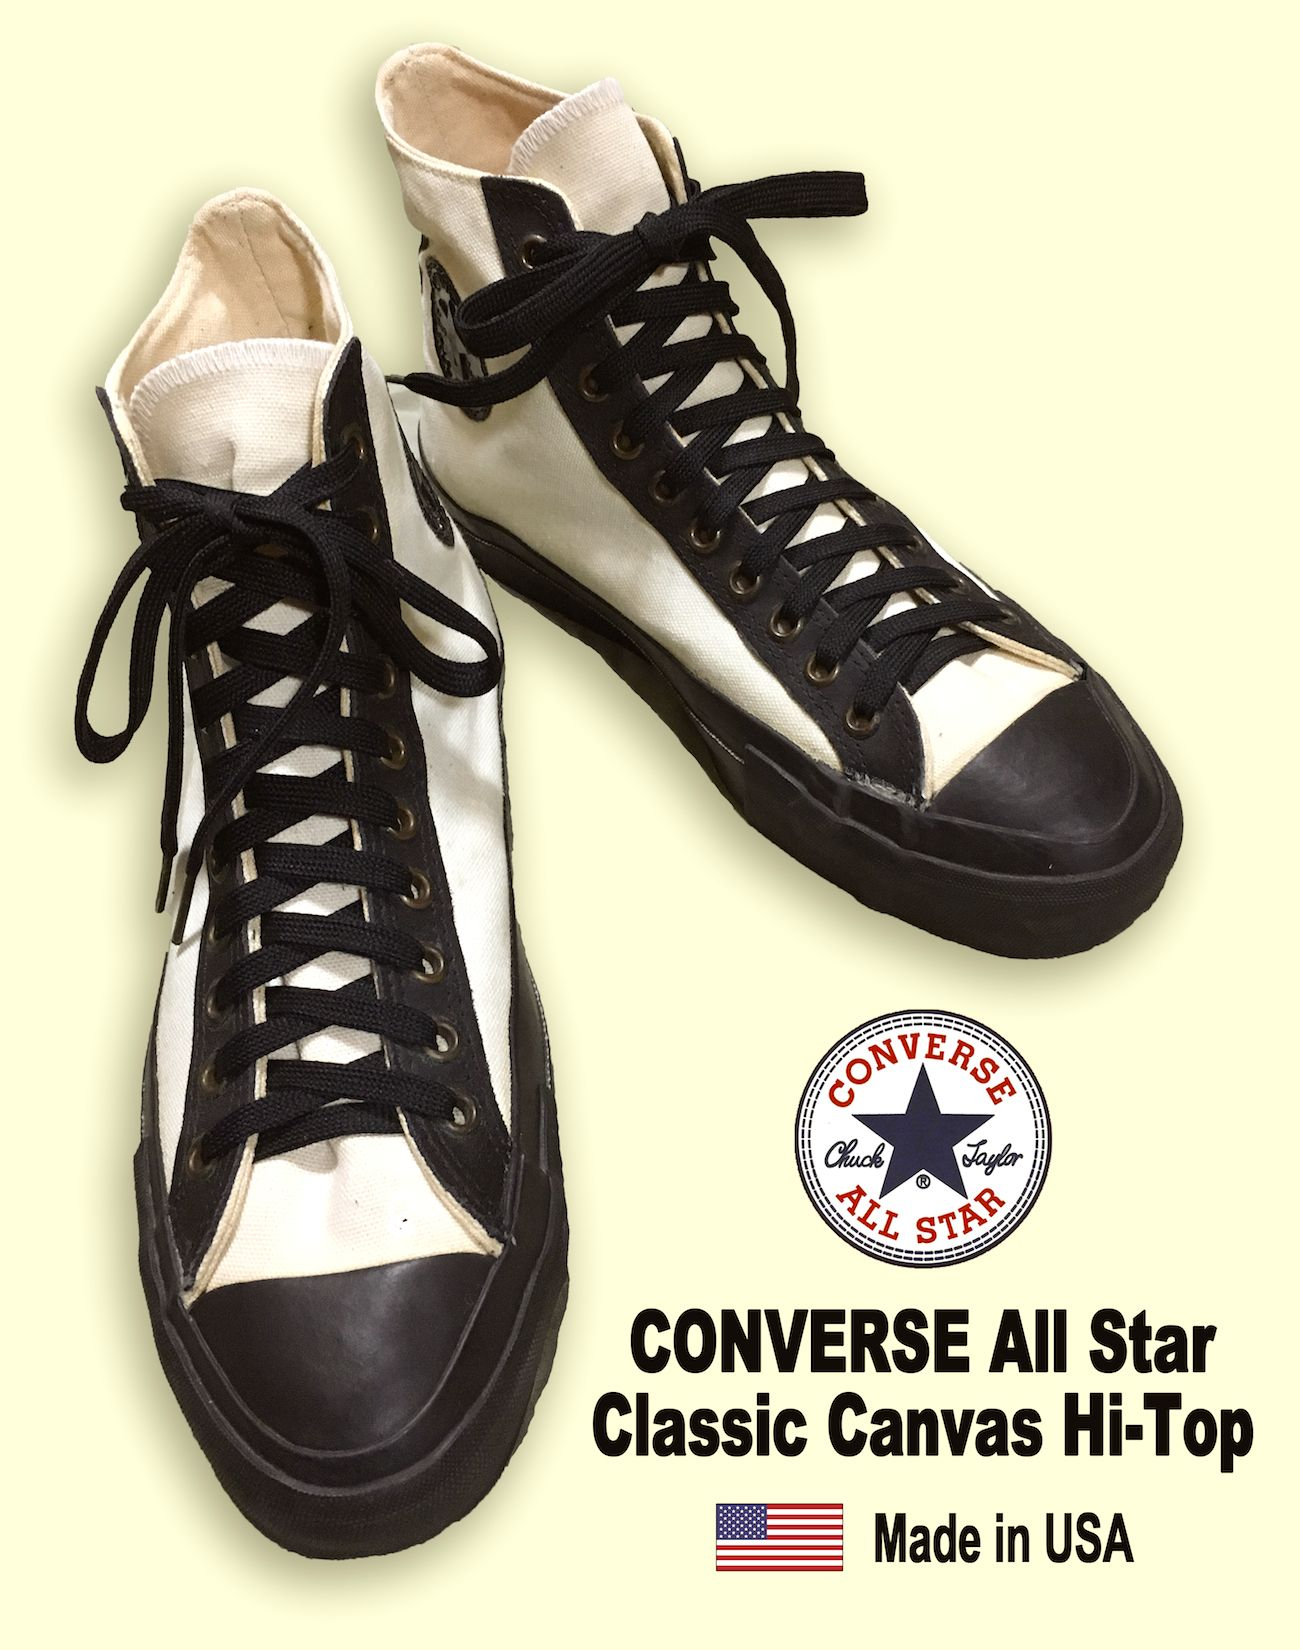 This model that Converse released as all star reproduction